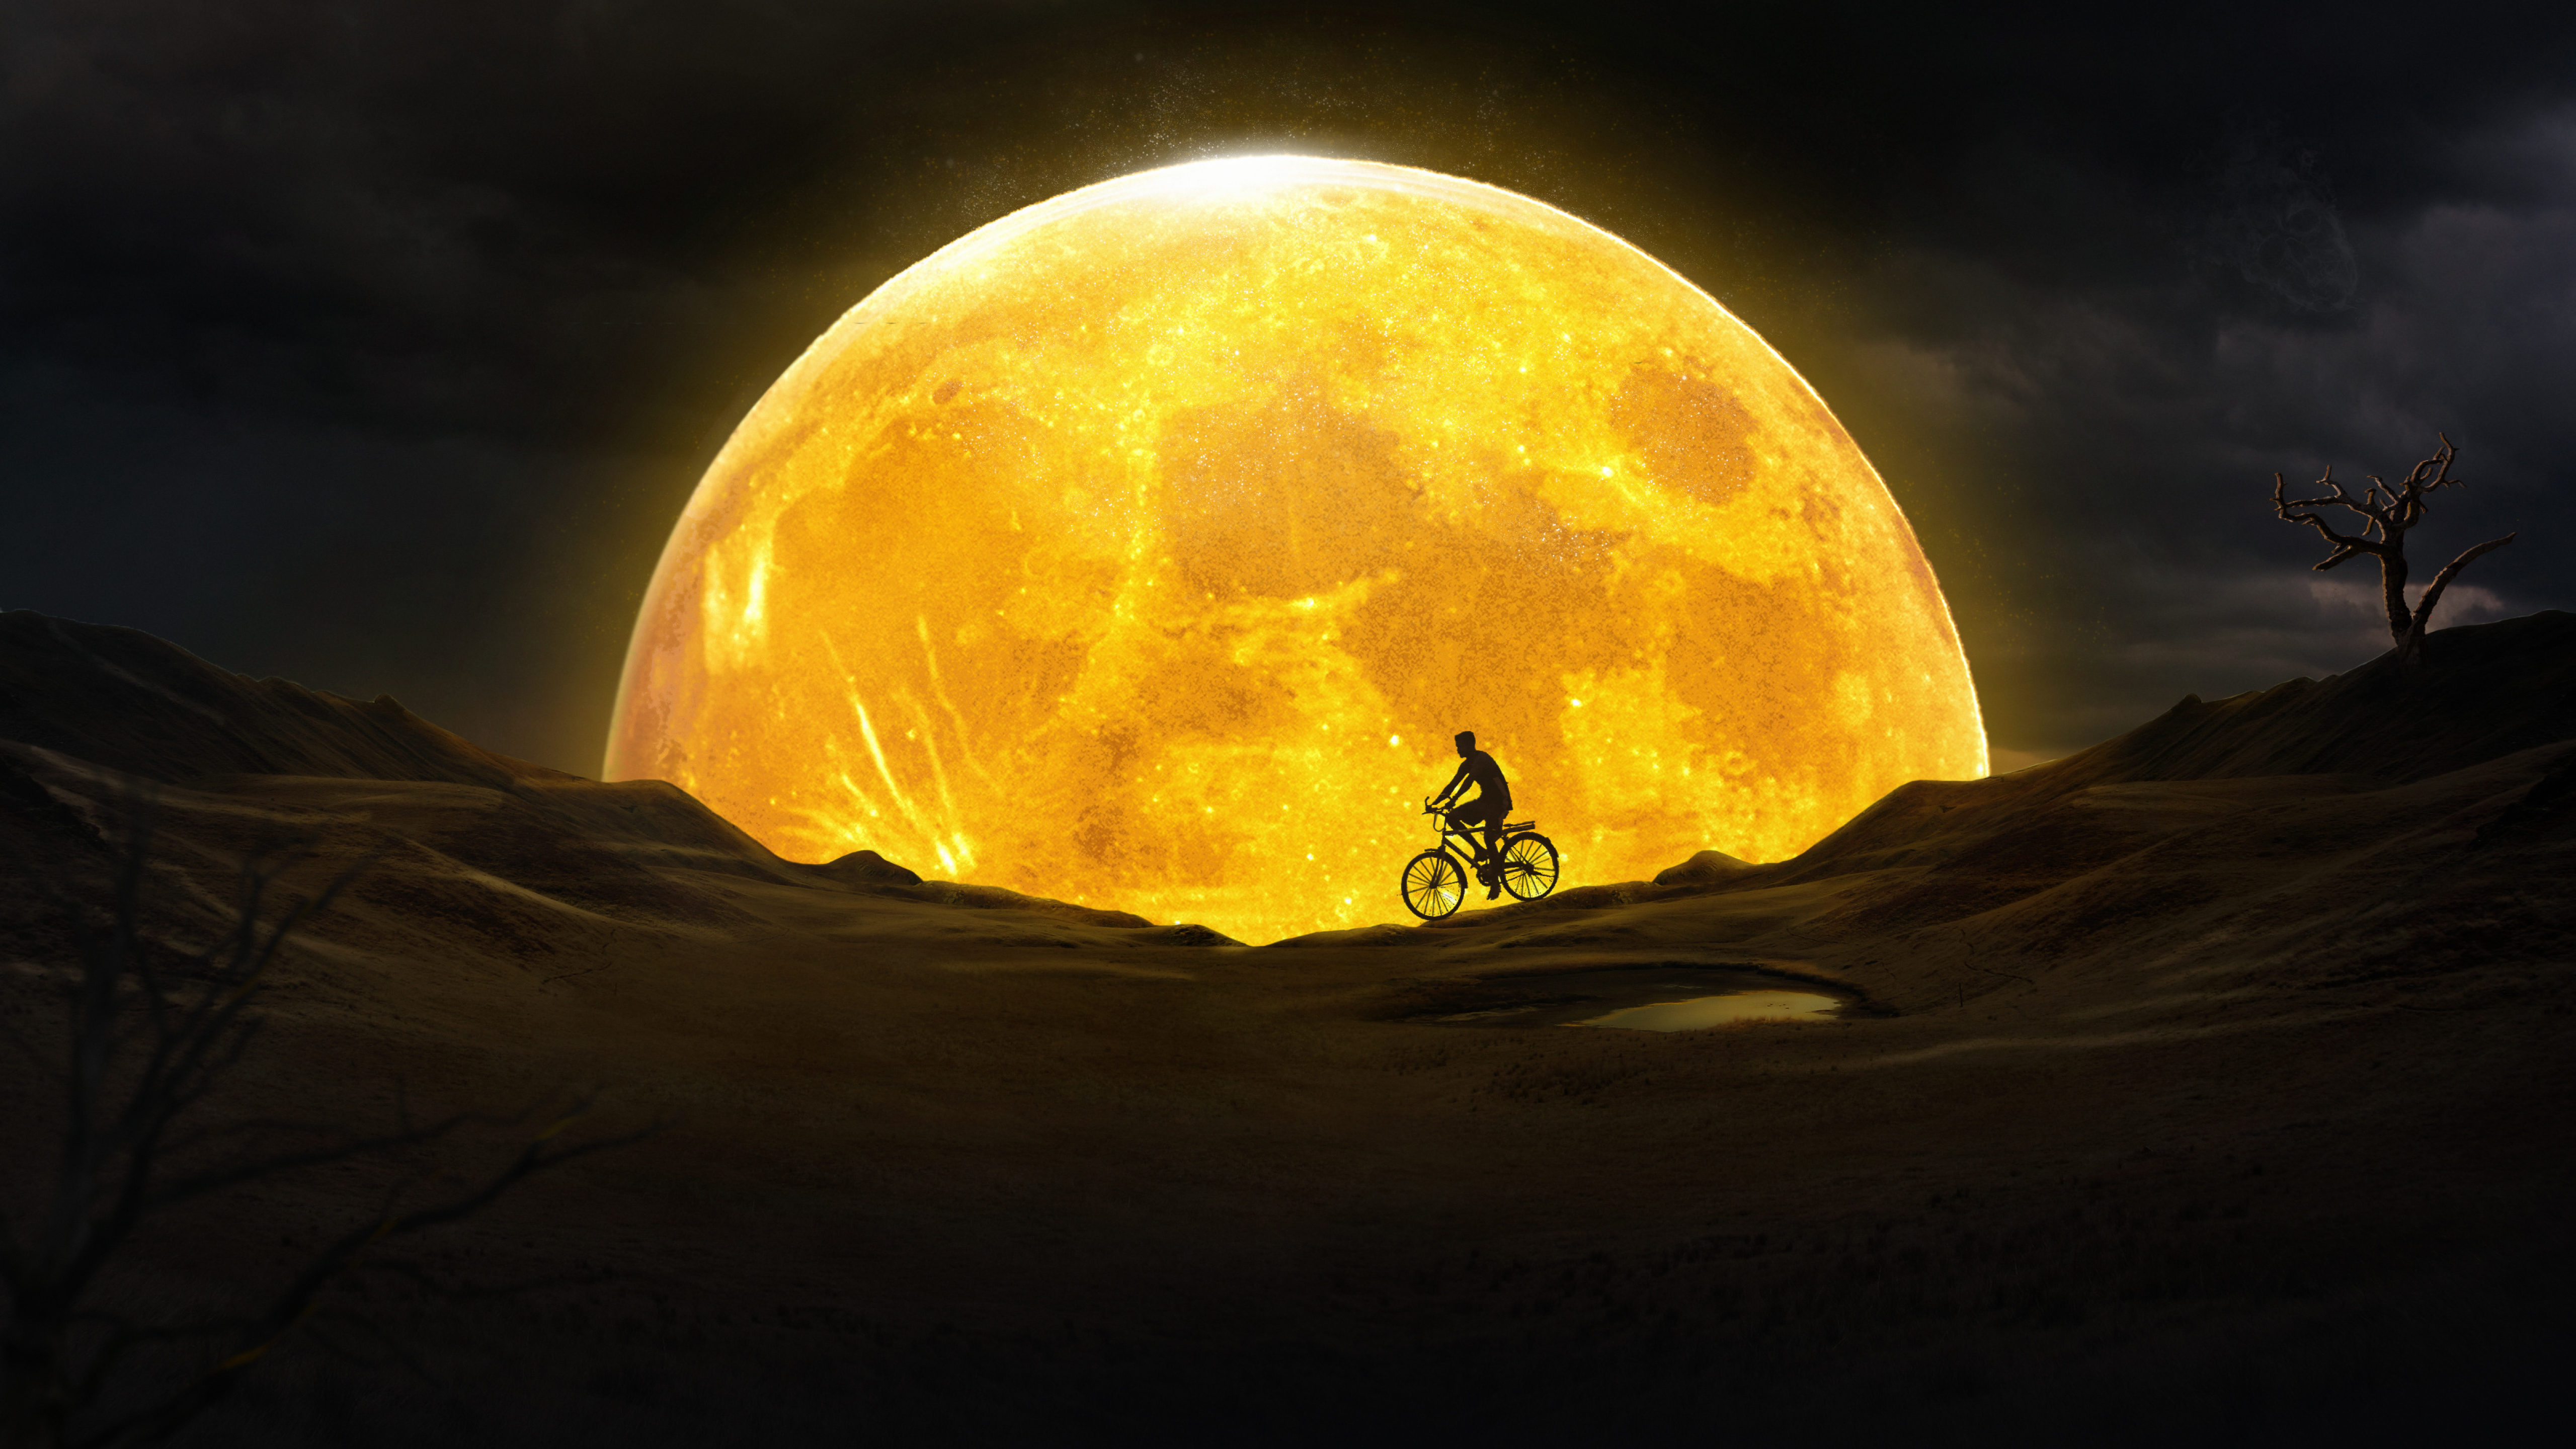 5120x2880 Cycling Near Yellow Moon 5k Wallpaper Hd Artist 4k Wallpapers Images Photos And Background